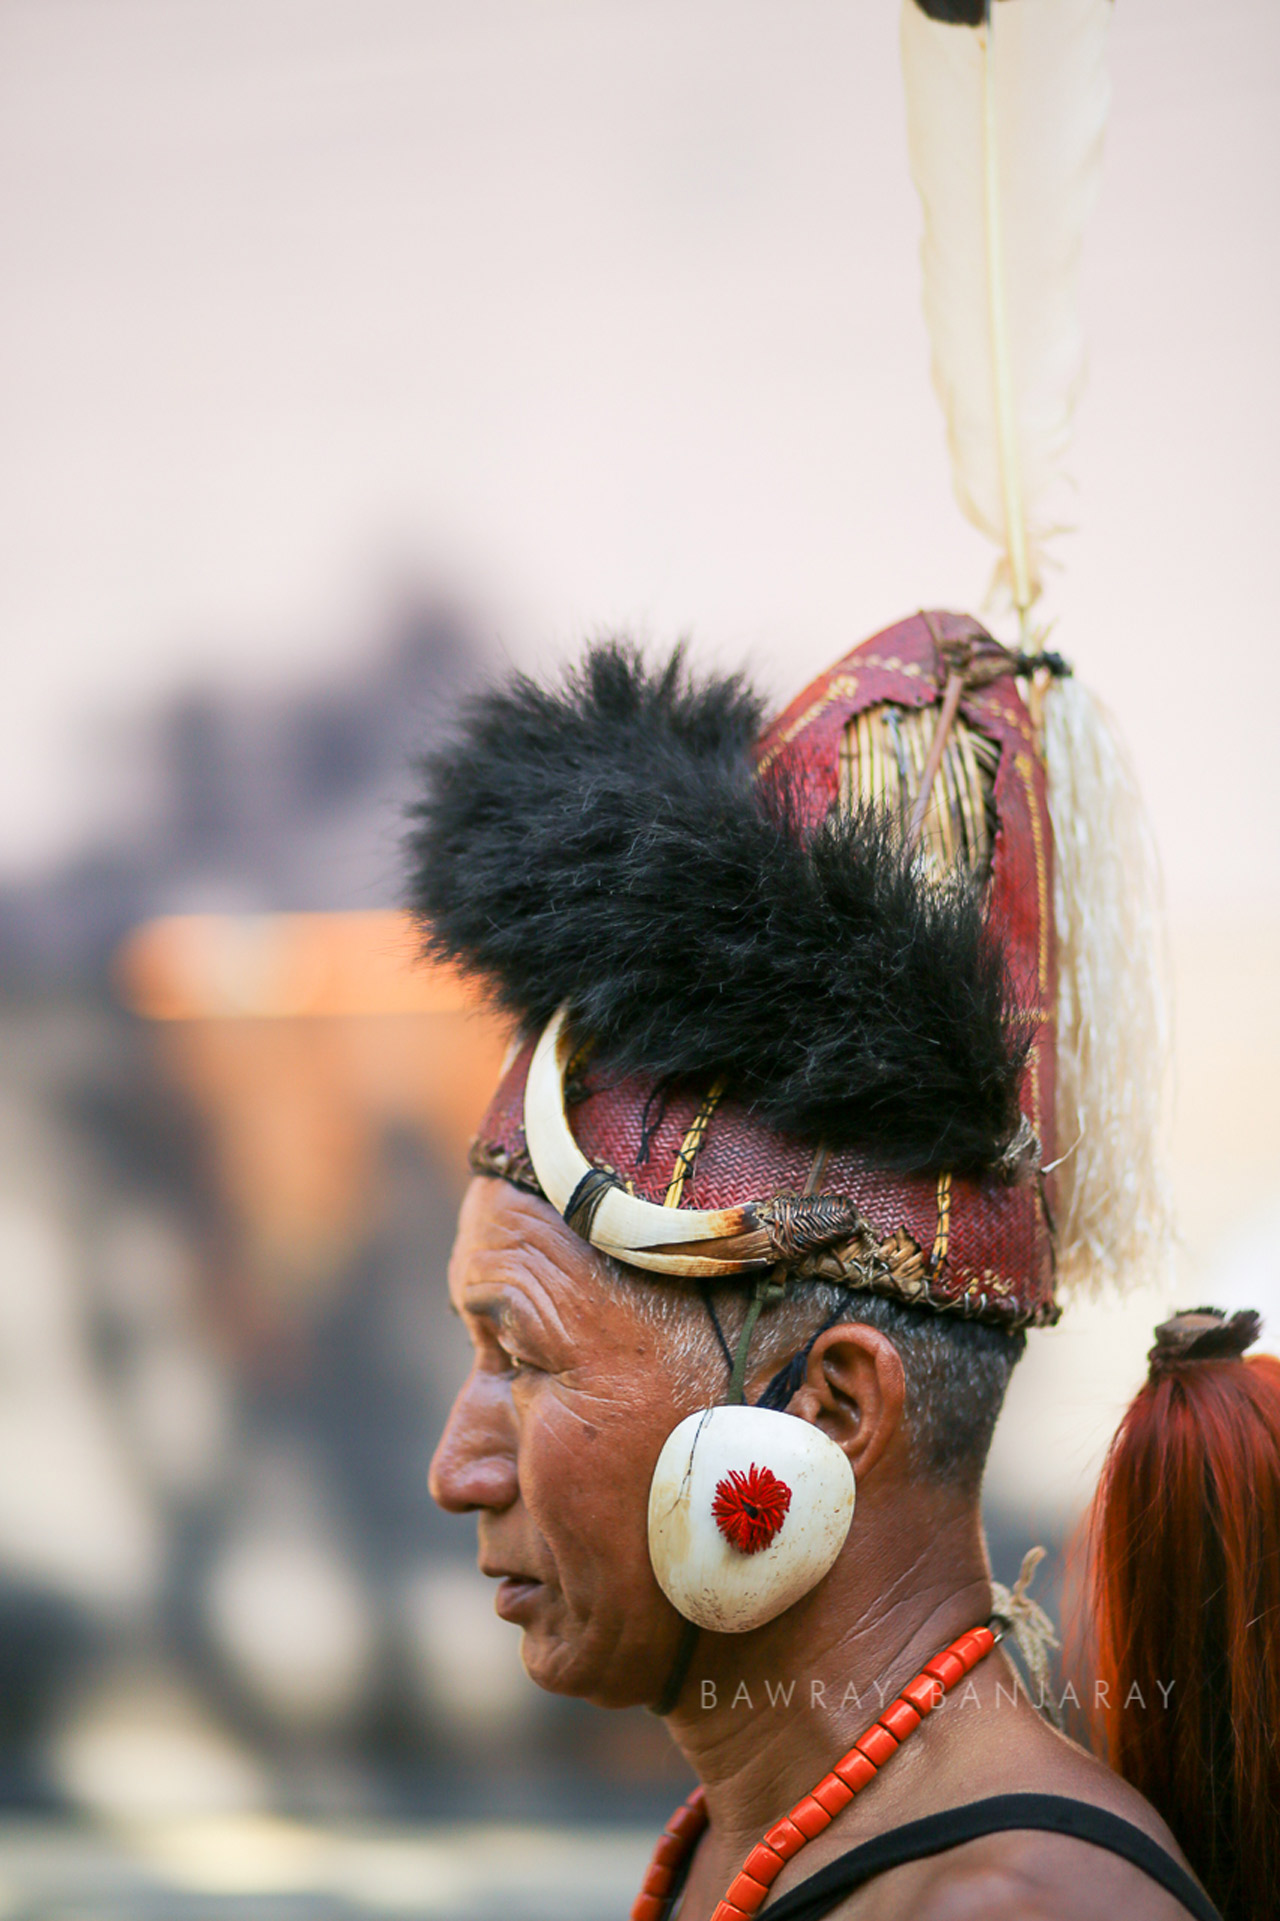 The performers and their colorful attires are a mazor attractions for tourists in Nagaland